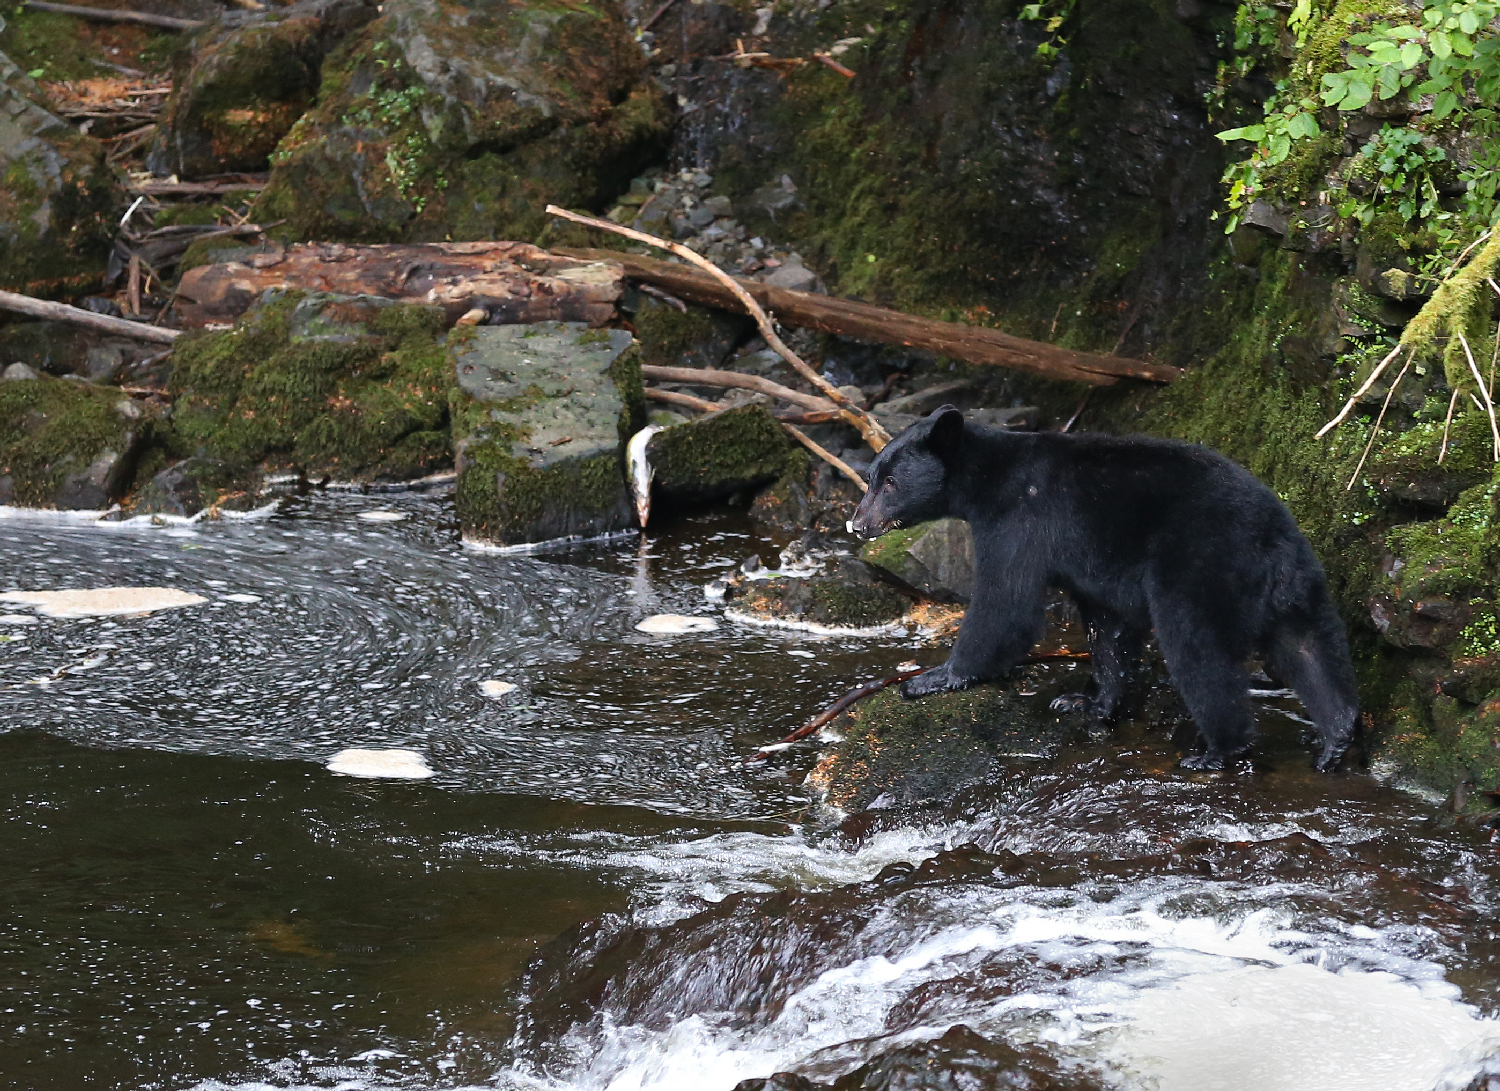 Alaska black bear fish stream southeast dog salmon creek bear viewing station platform